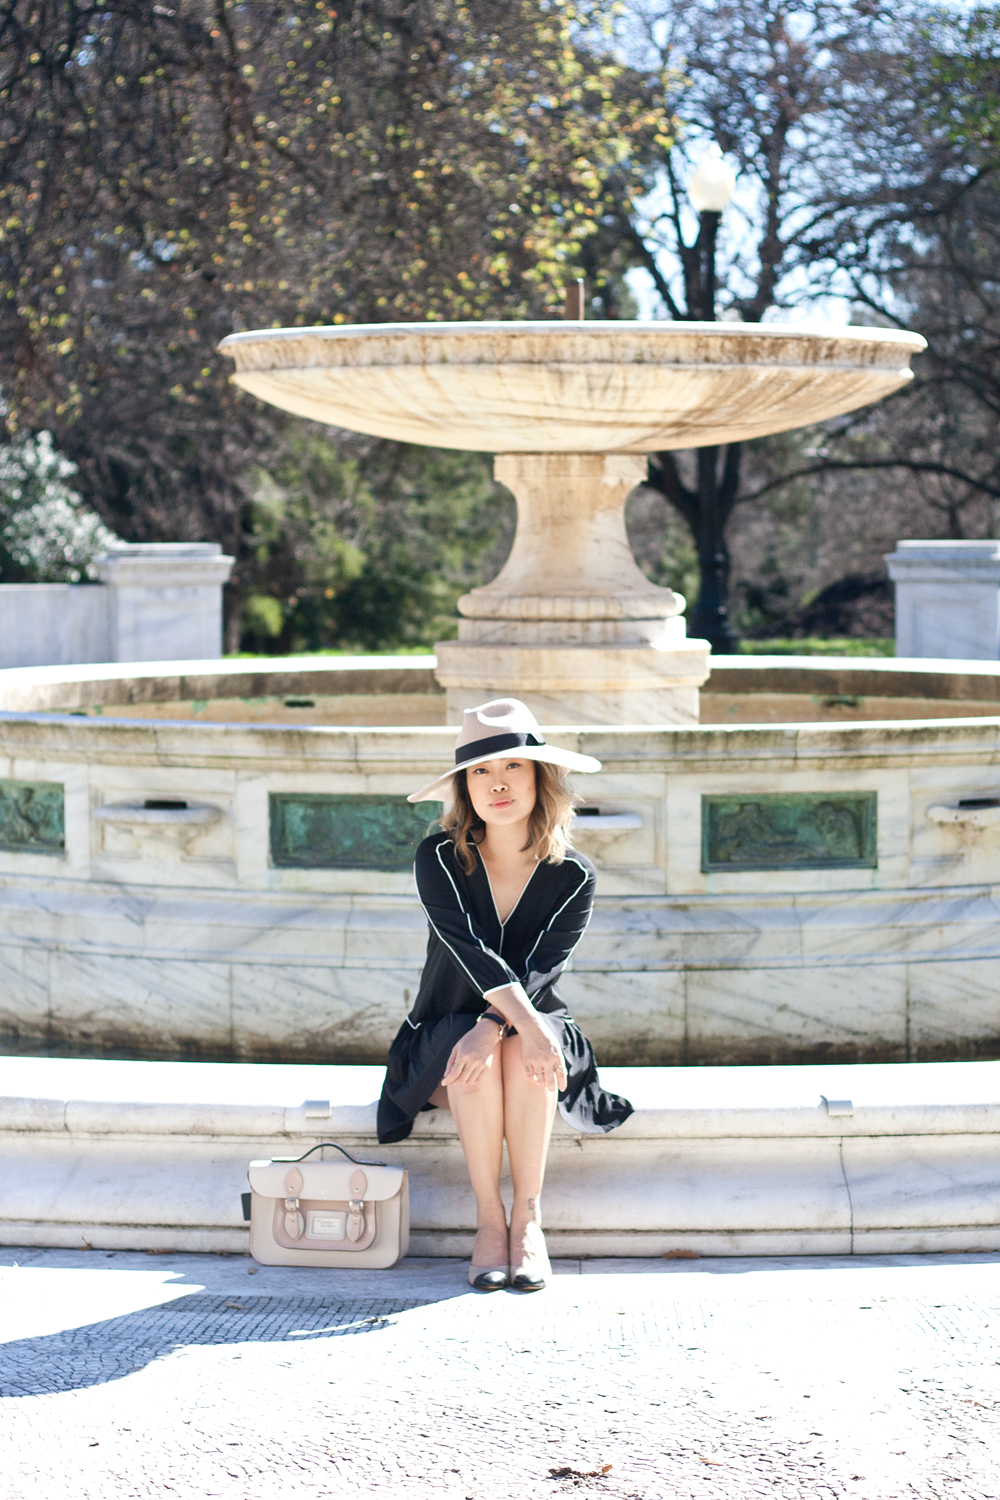 05cooperandella-dress-hat-ysl-style-fashion-sf